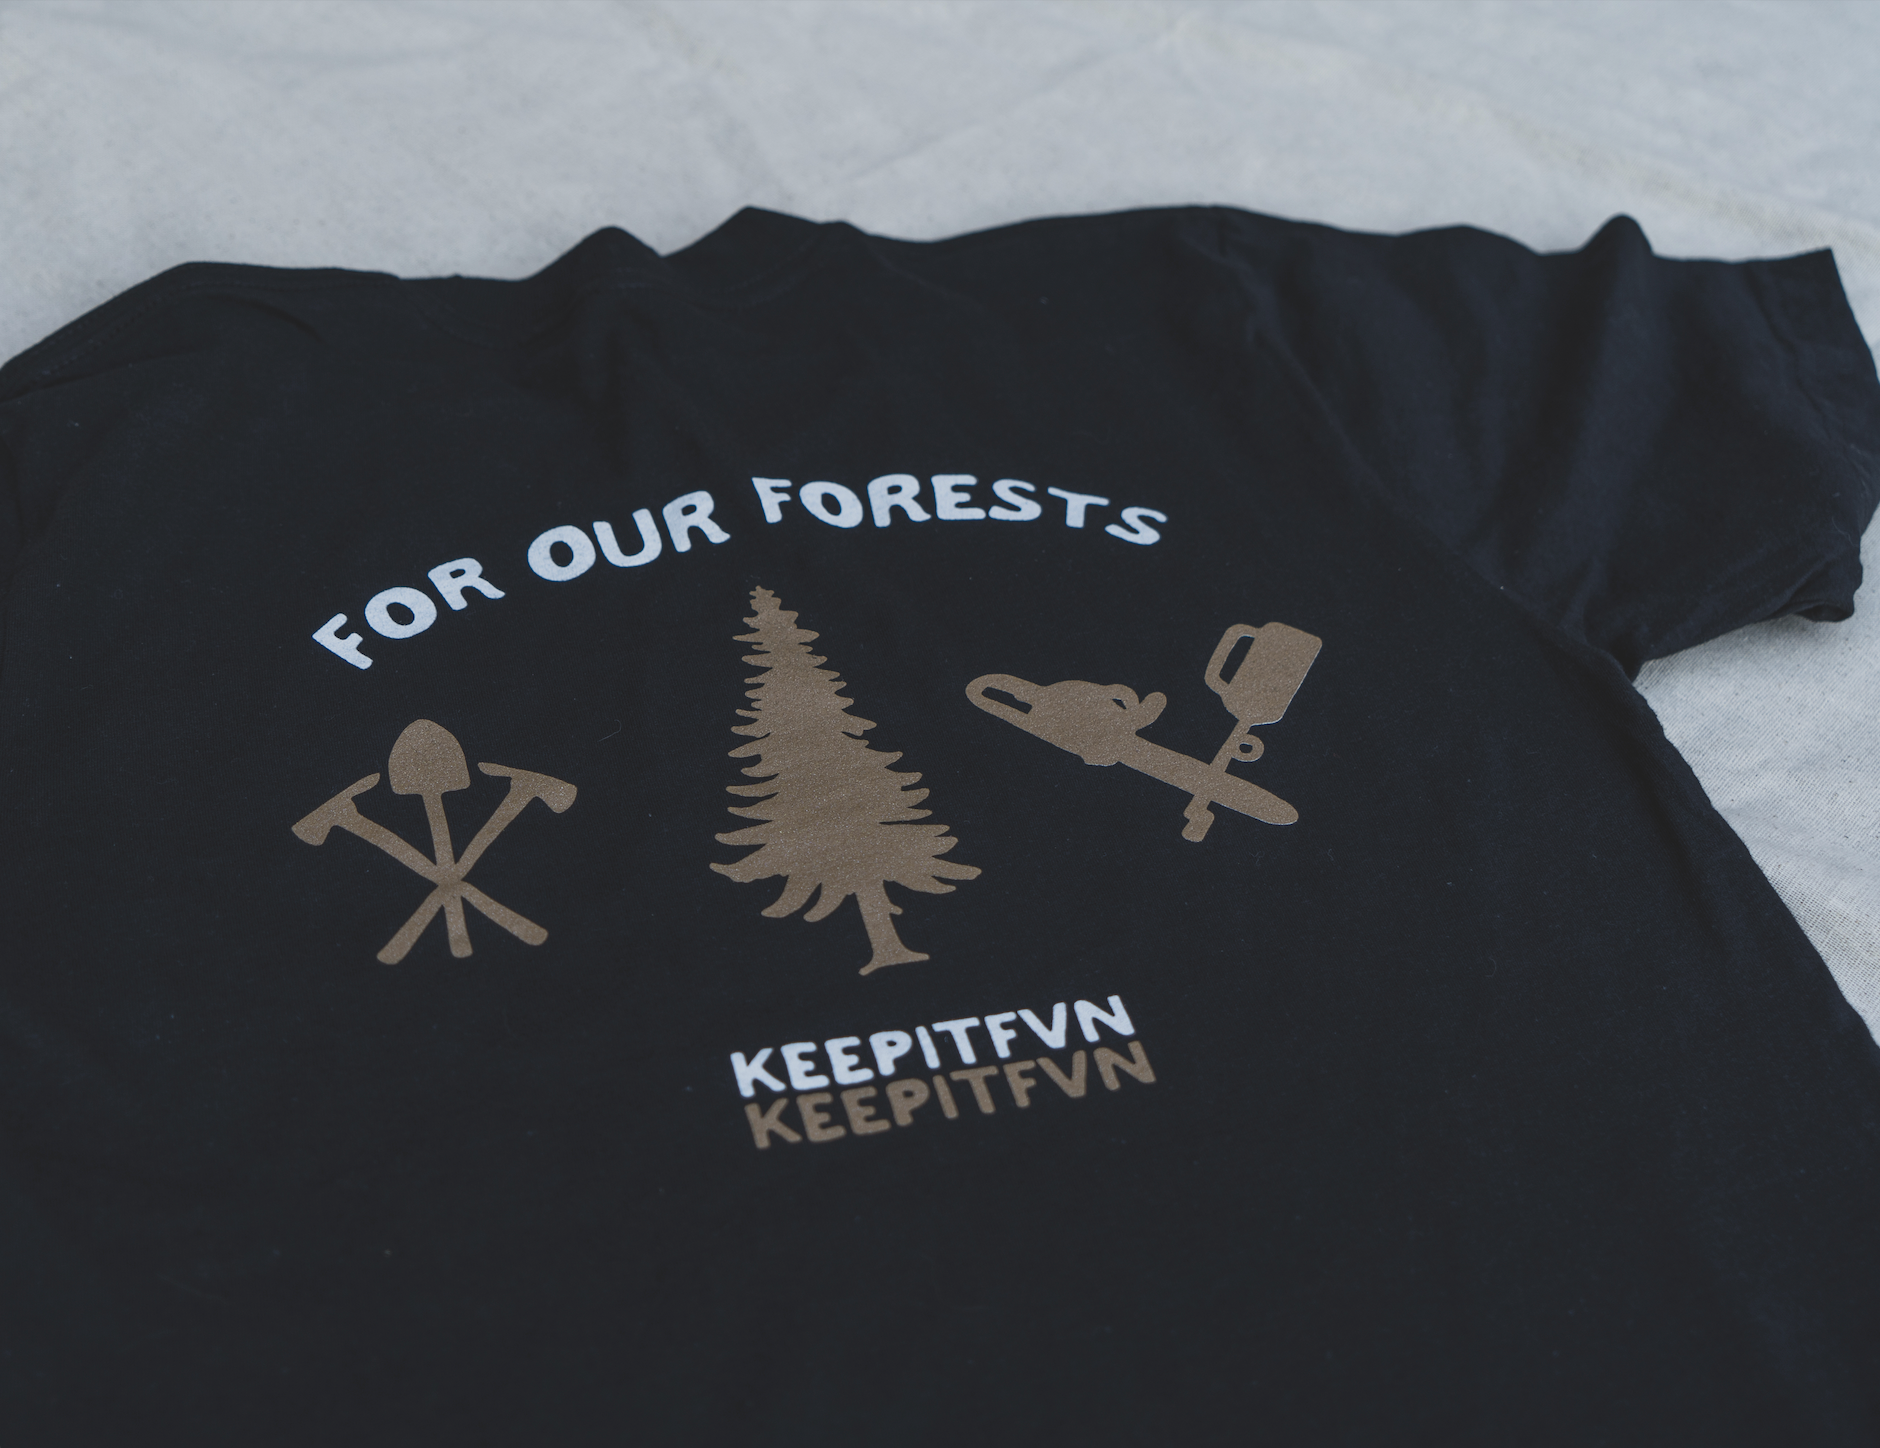 For Our Forests Tee - KEEPITFVN